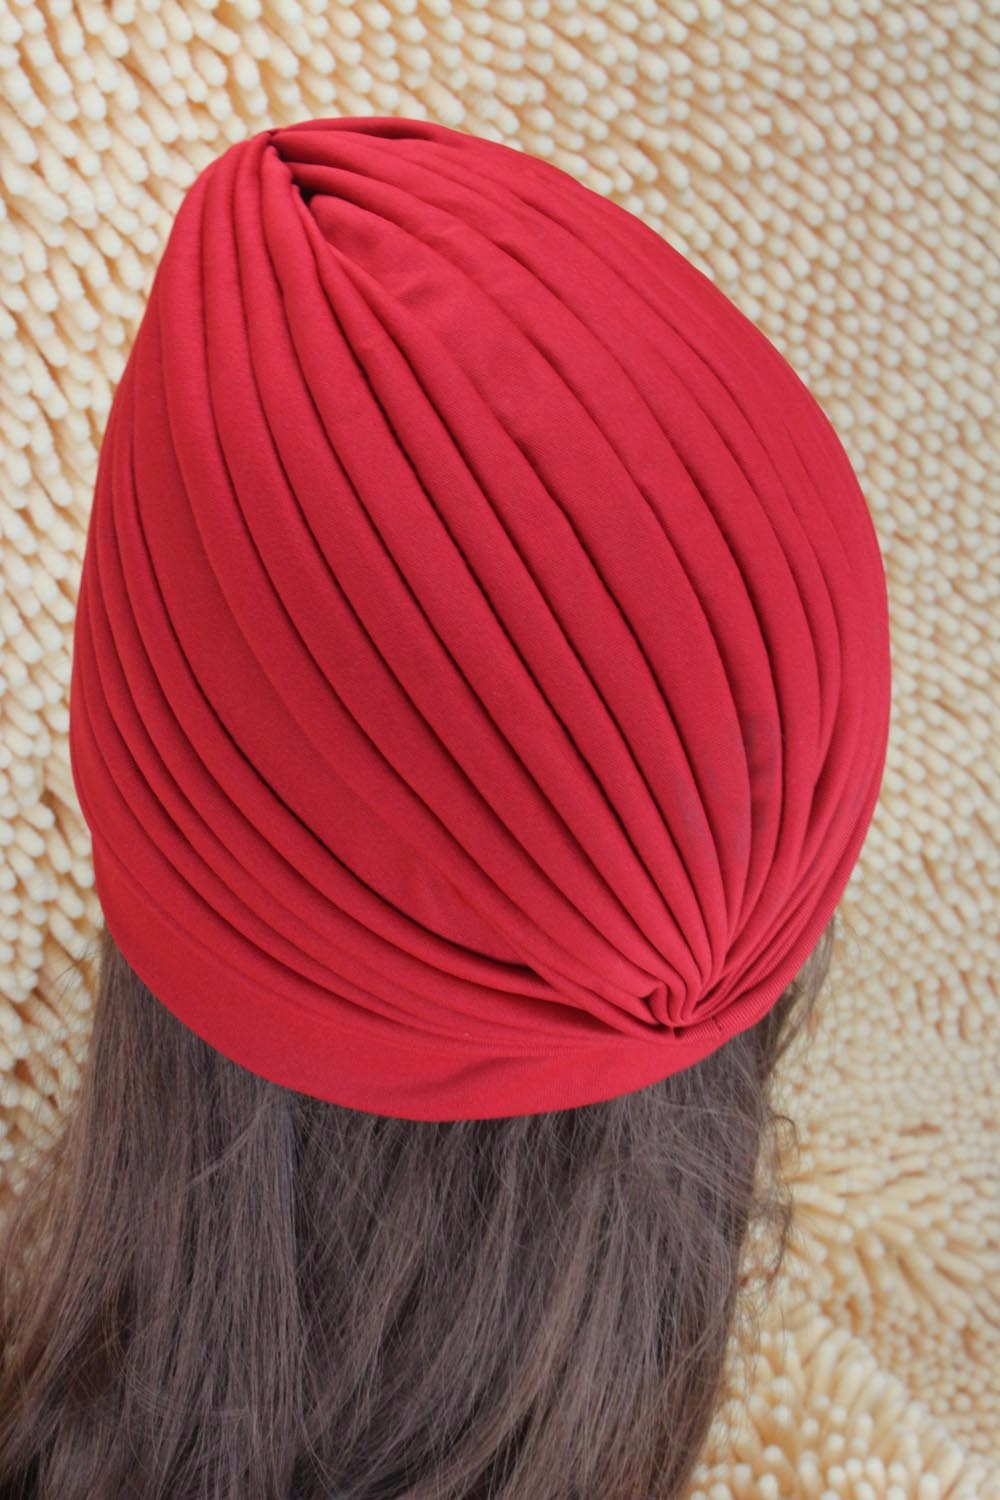 2016 New Fashion Women Turban Hat Bohemia 21 Solid Color Fold Beanies Female Simple Autumn Bonnet Indian Turban Hats For Women (4)